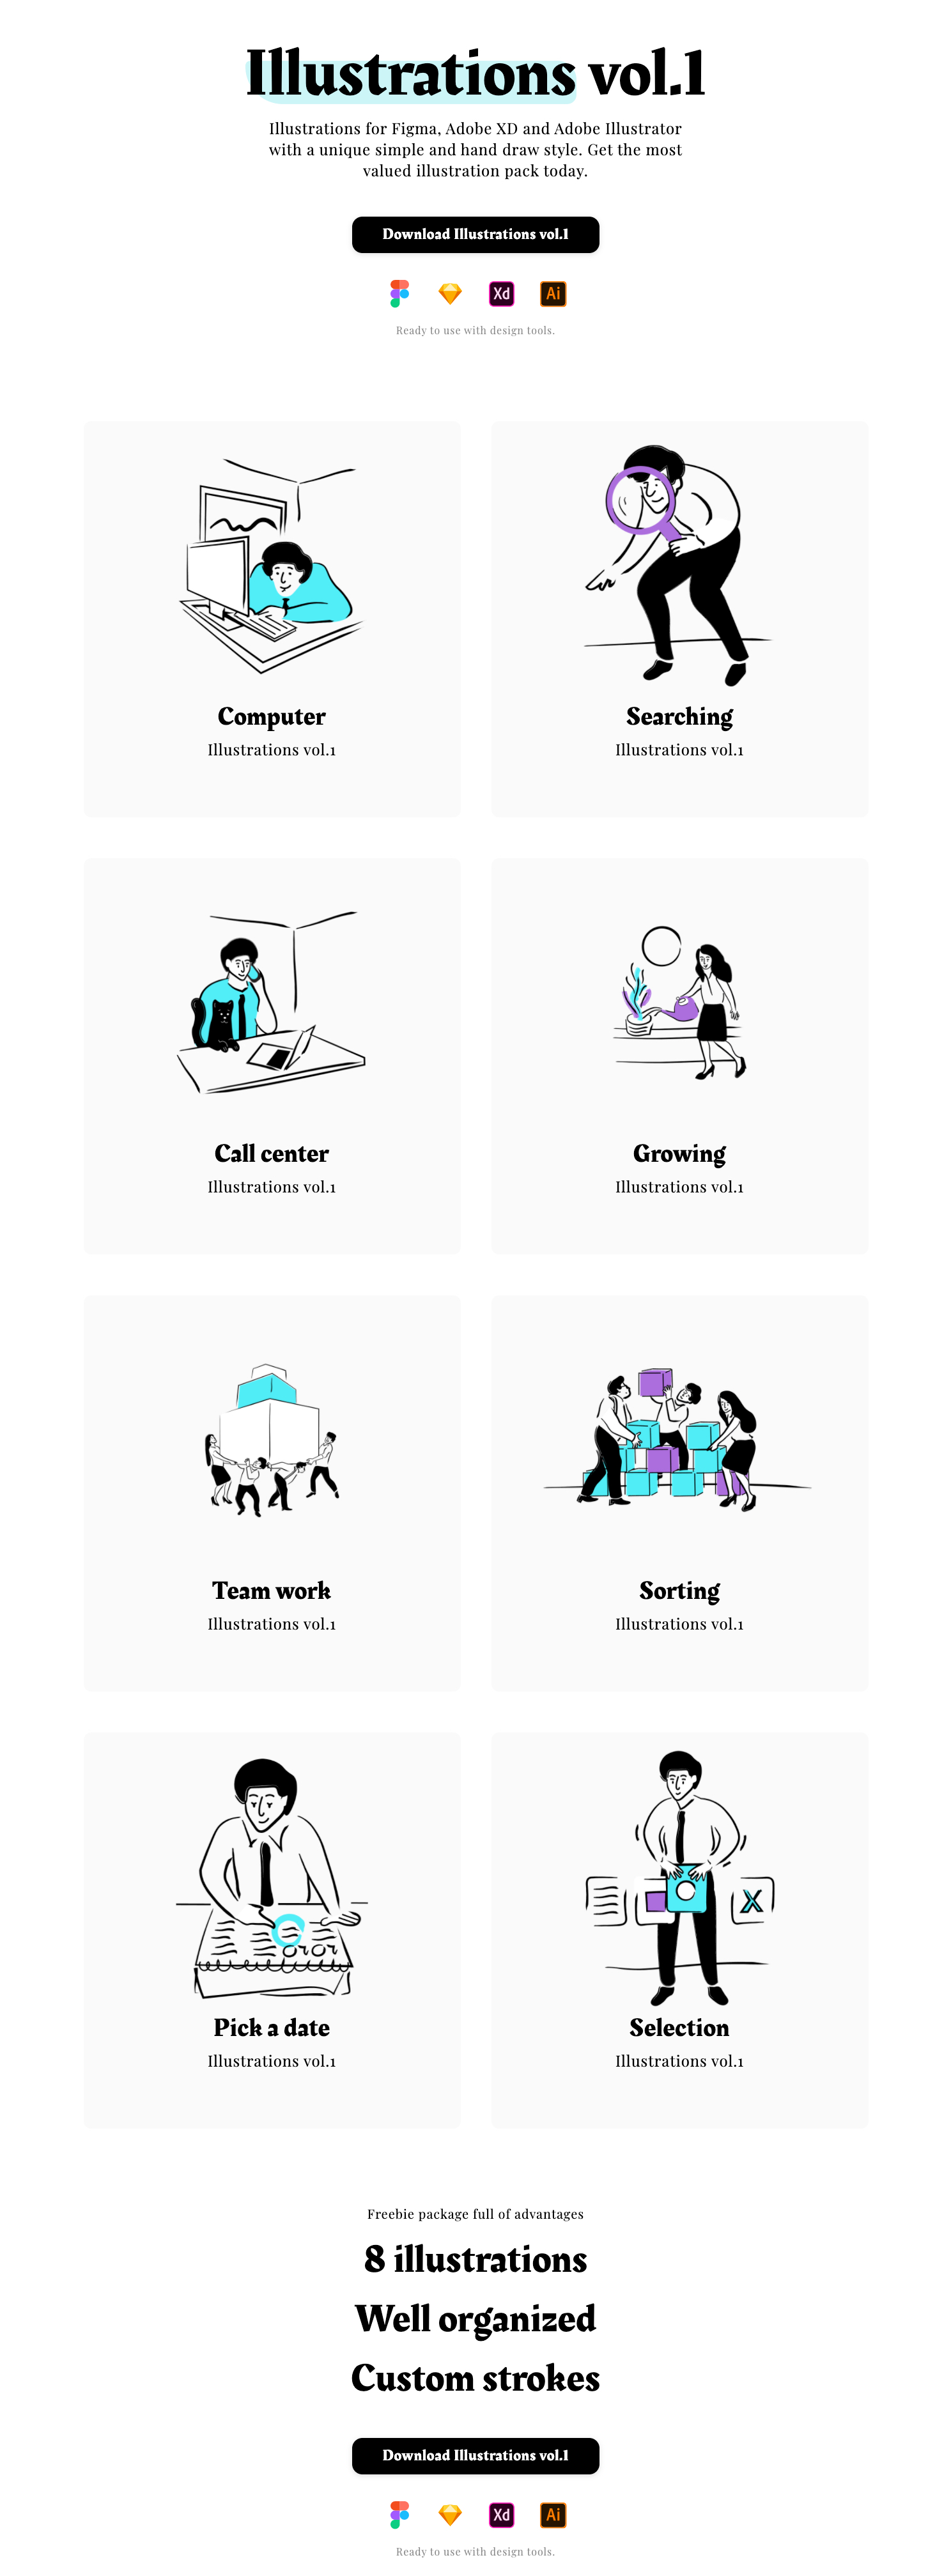 Illustrations vol.1 - Illustrations for Figma, Adobe XD, Sketch and Adobe Illustrator with a unique simple and hand draw style. Get the most valued illustration pack today.